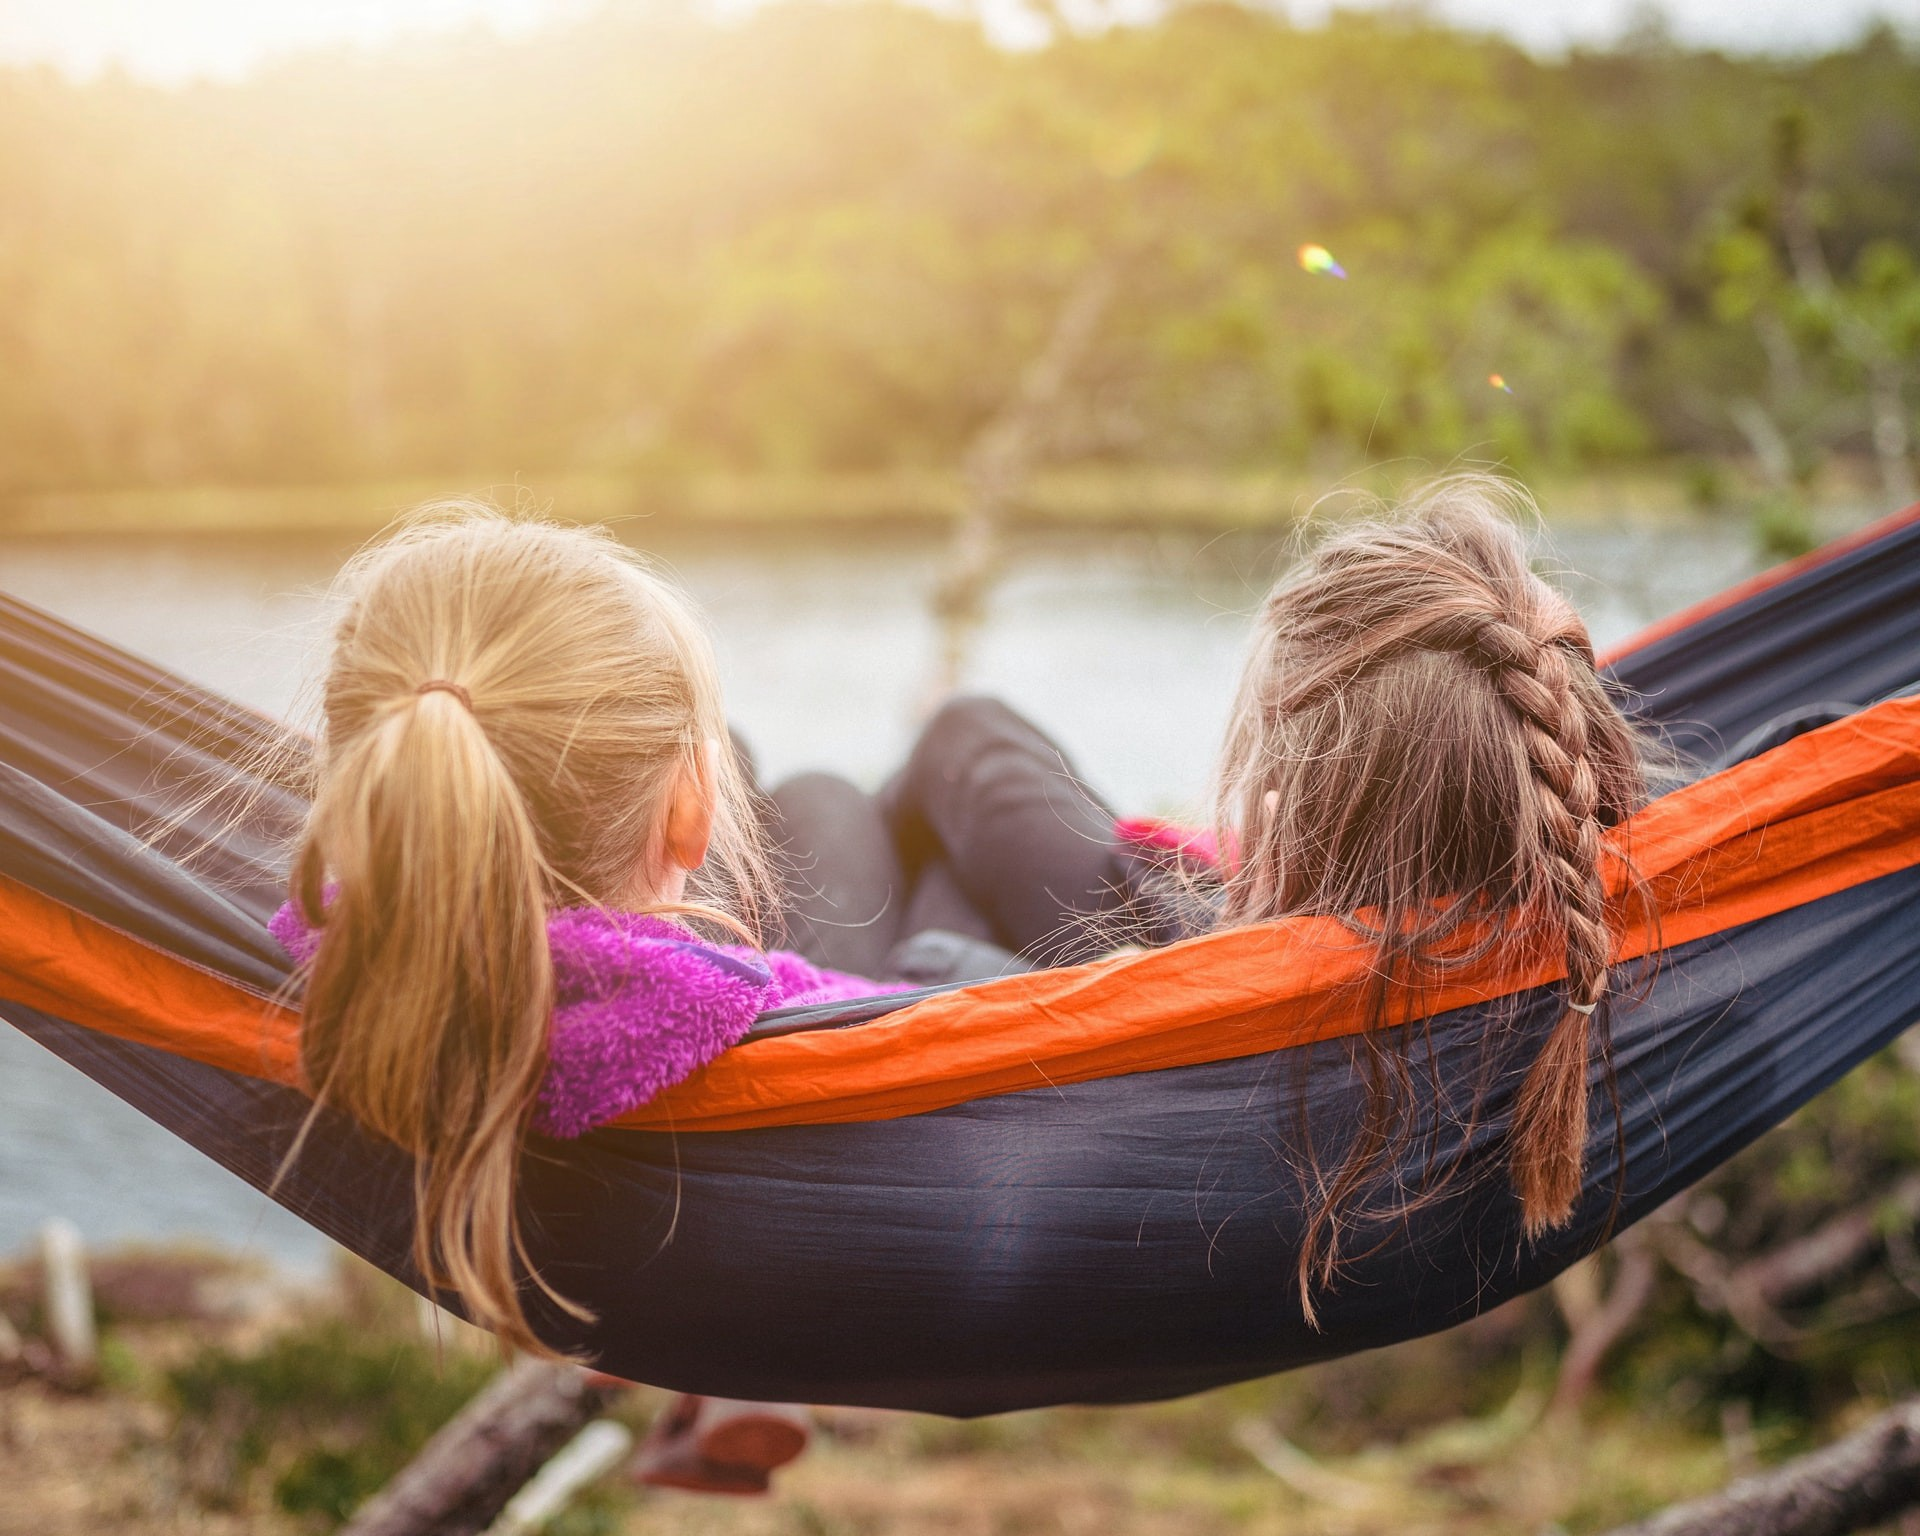 two people lying on a hammock together